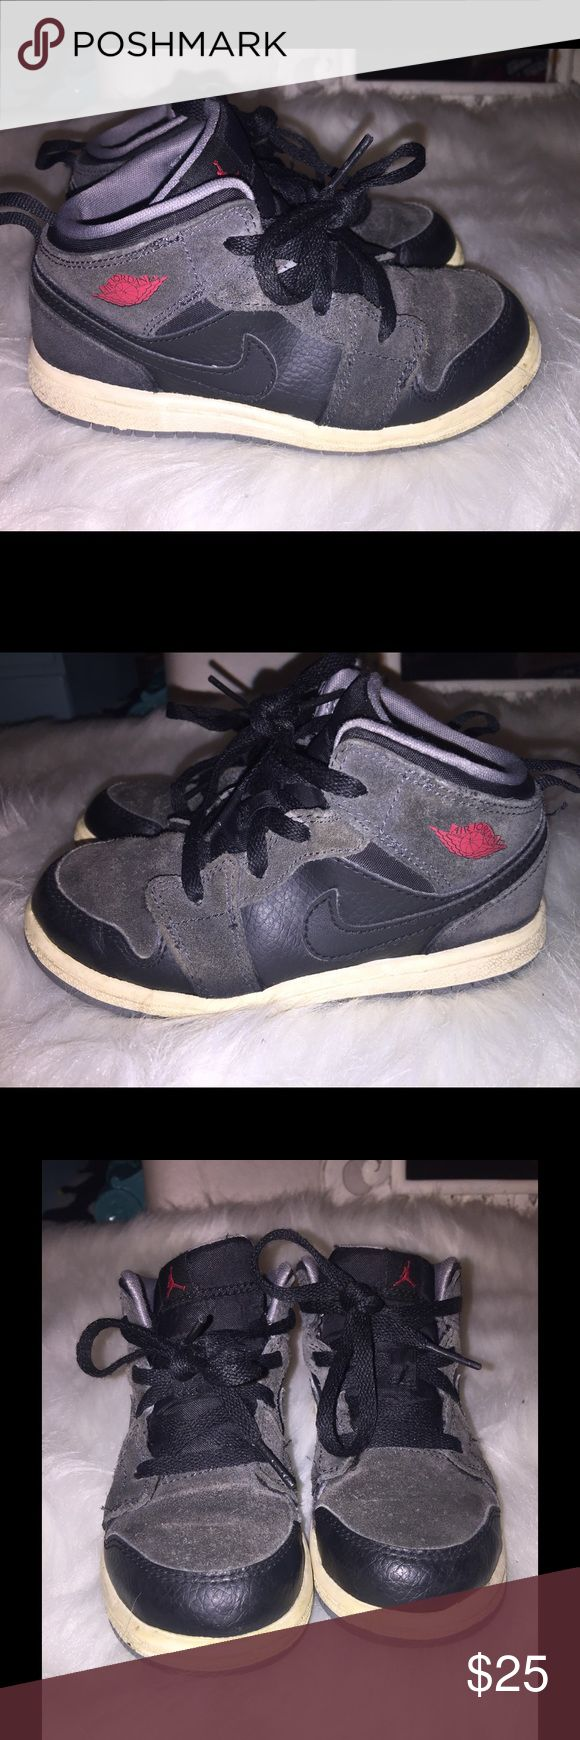 Boys Nike Air Jordan's Low Hightop Sneakers Sz 10c AS IS- Boys Nike Air Jordan's Low Hightop Sneaker Shoes Sz 10c! Only problem is the outer sole discolor and some fade on the Grey Suede, but not bad! Nike Shoes Sneakers